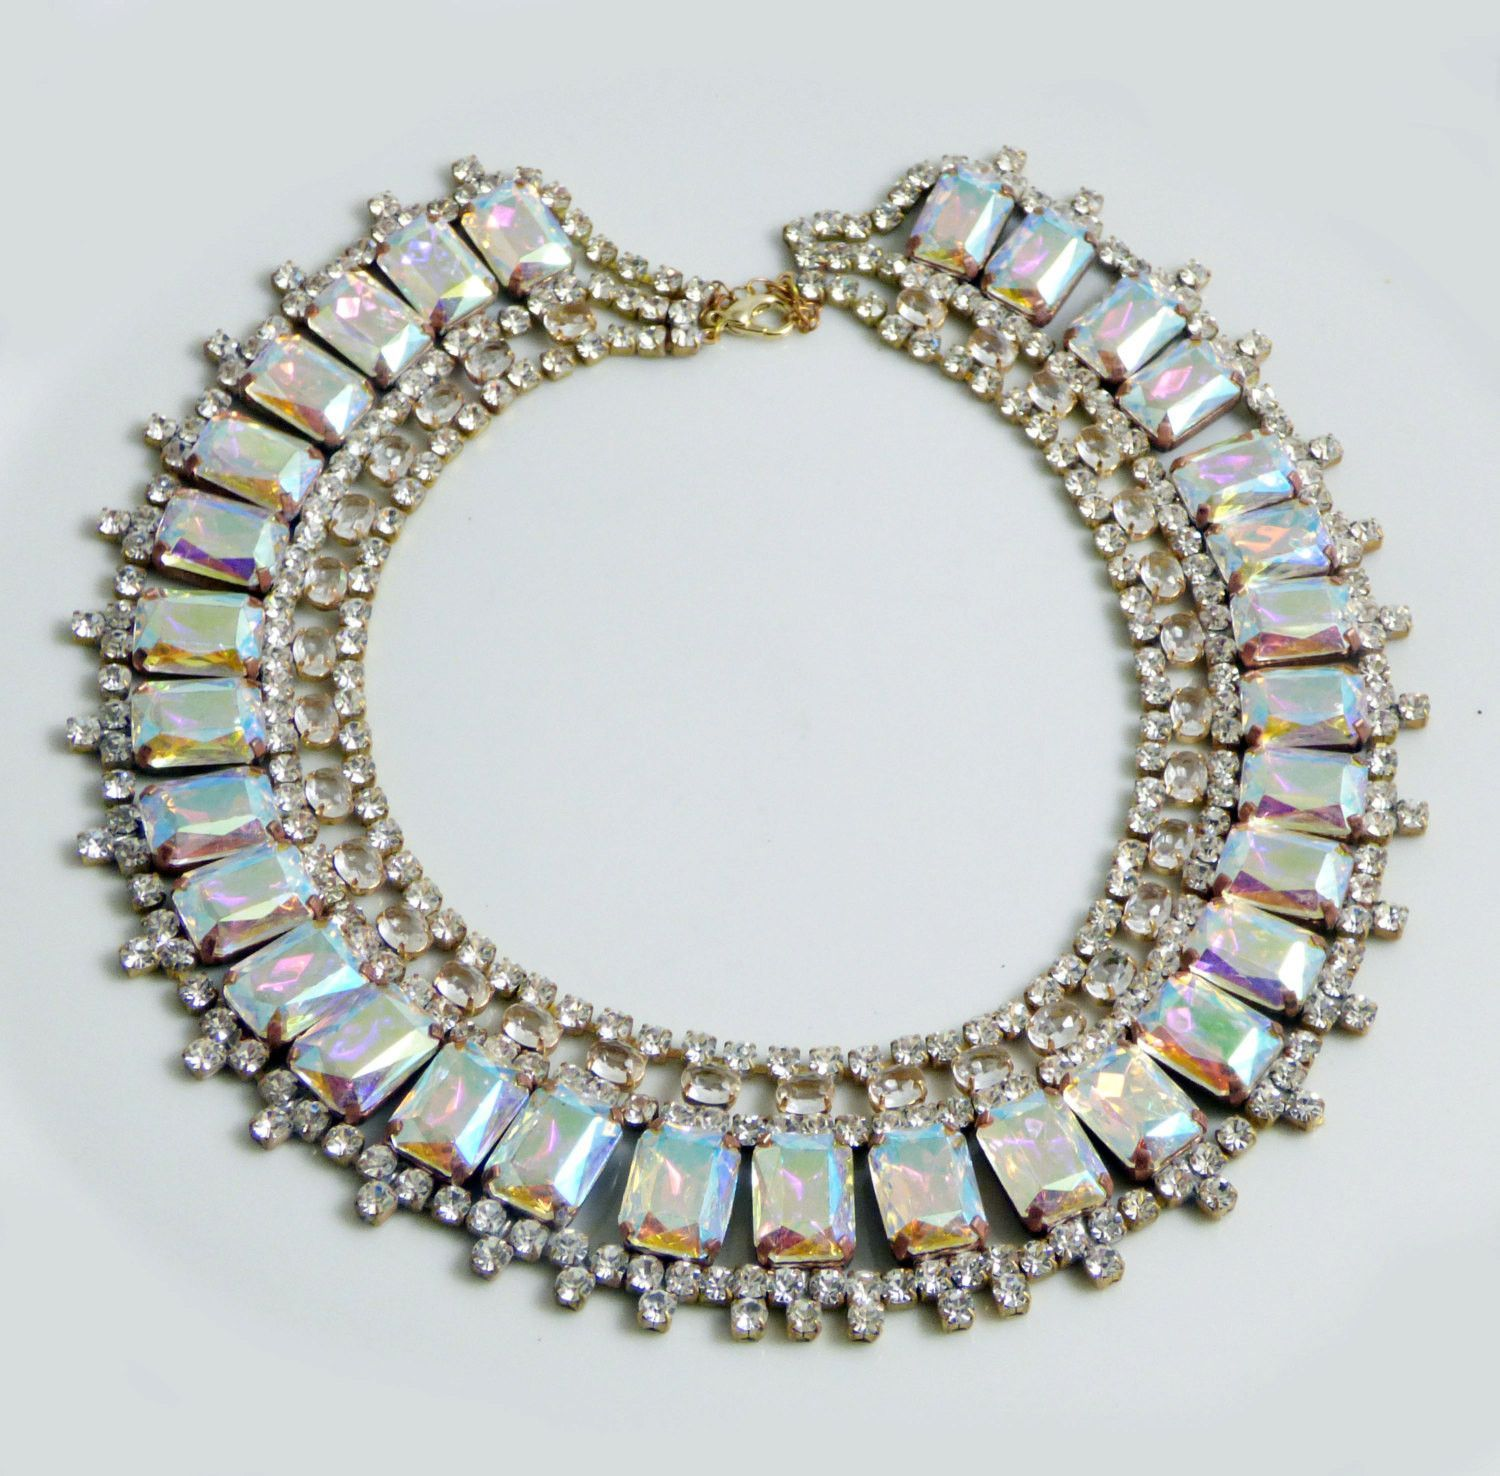 http://vintagelanejewelry.com/collections/shop-all/products/czech-glass-borealis-rhinestone-bib-necklace-husar-d-1